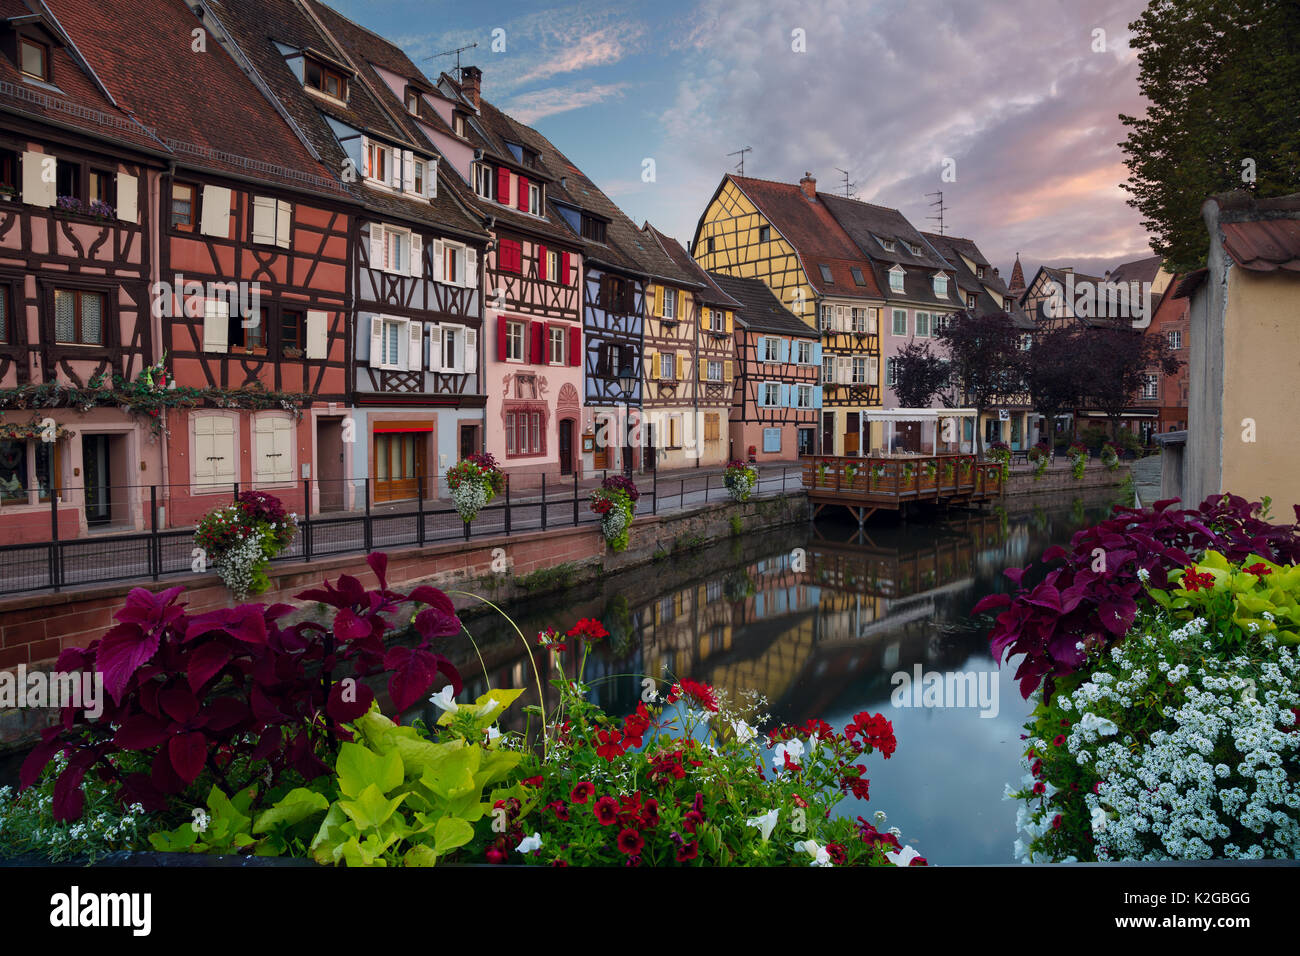 City of Colmar. Cityscape image of old town Colmar, France during sunset. - Stock Image